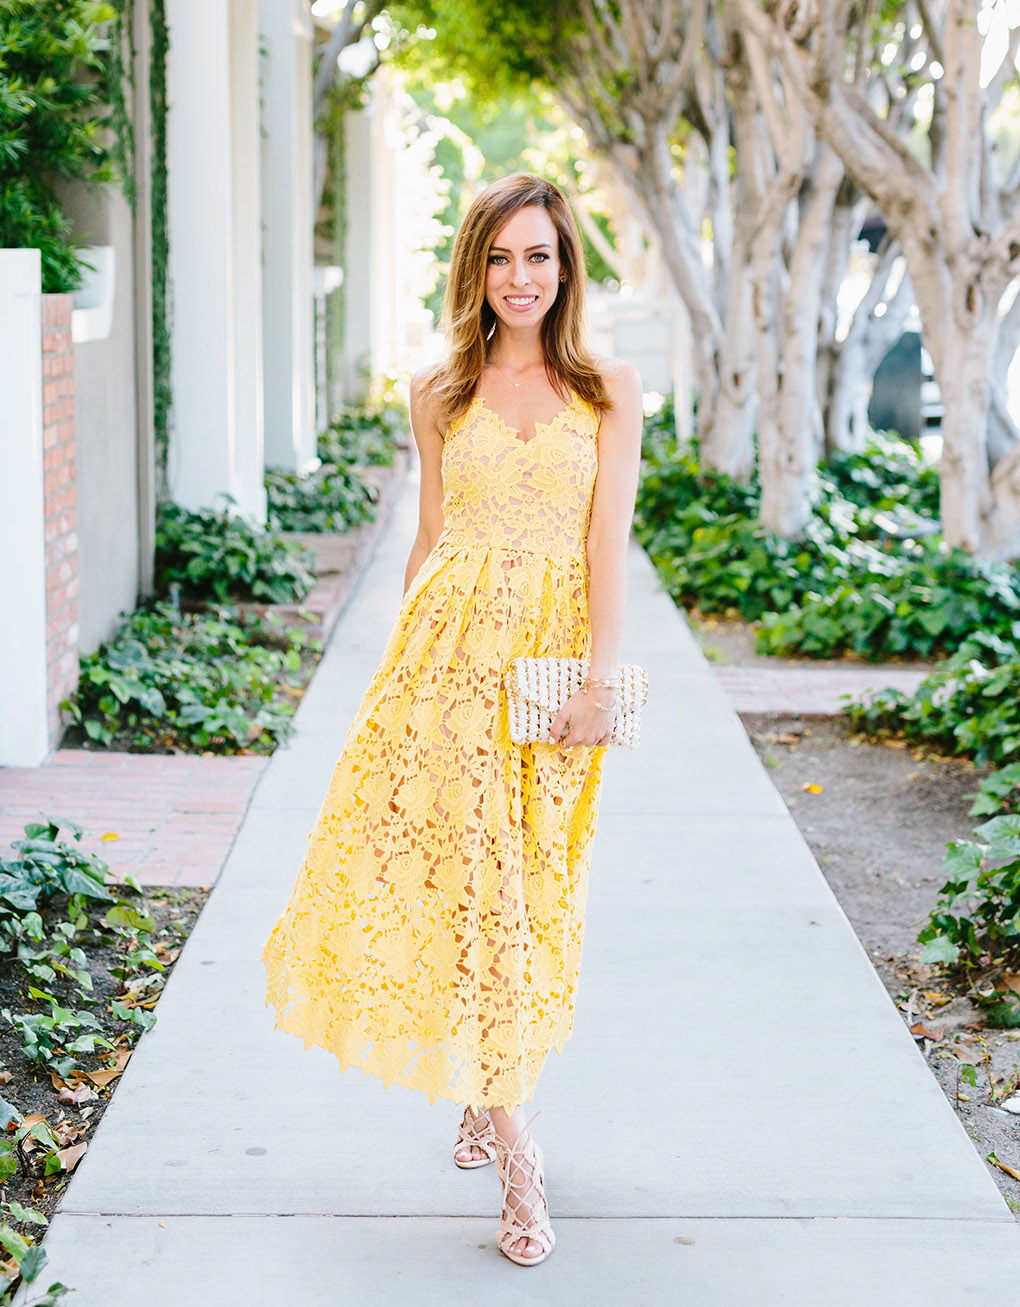 c9d2bf93f2ac ... Sydne Style wears H&m yellow lace dress inspired by Self Portrait  celebrity favorite